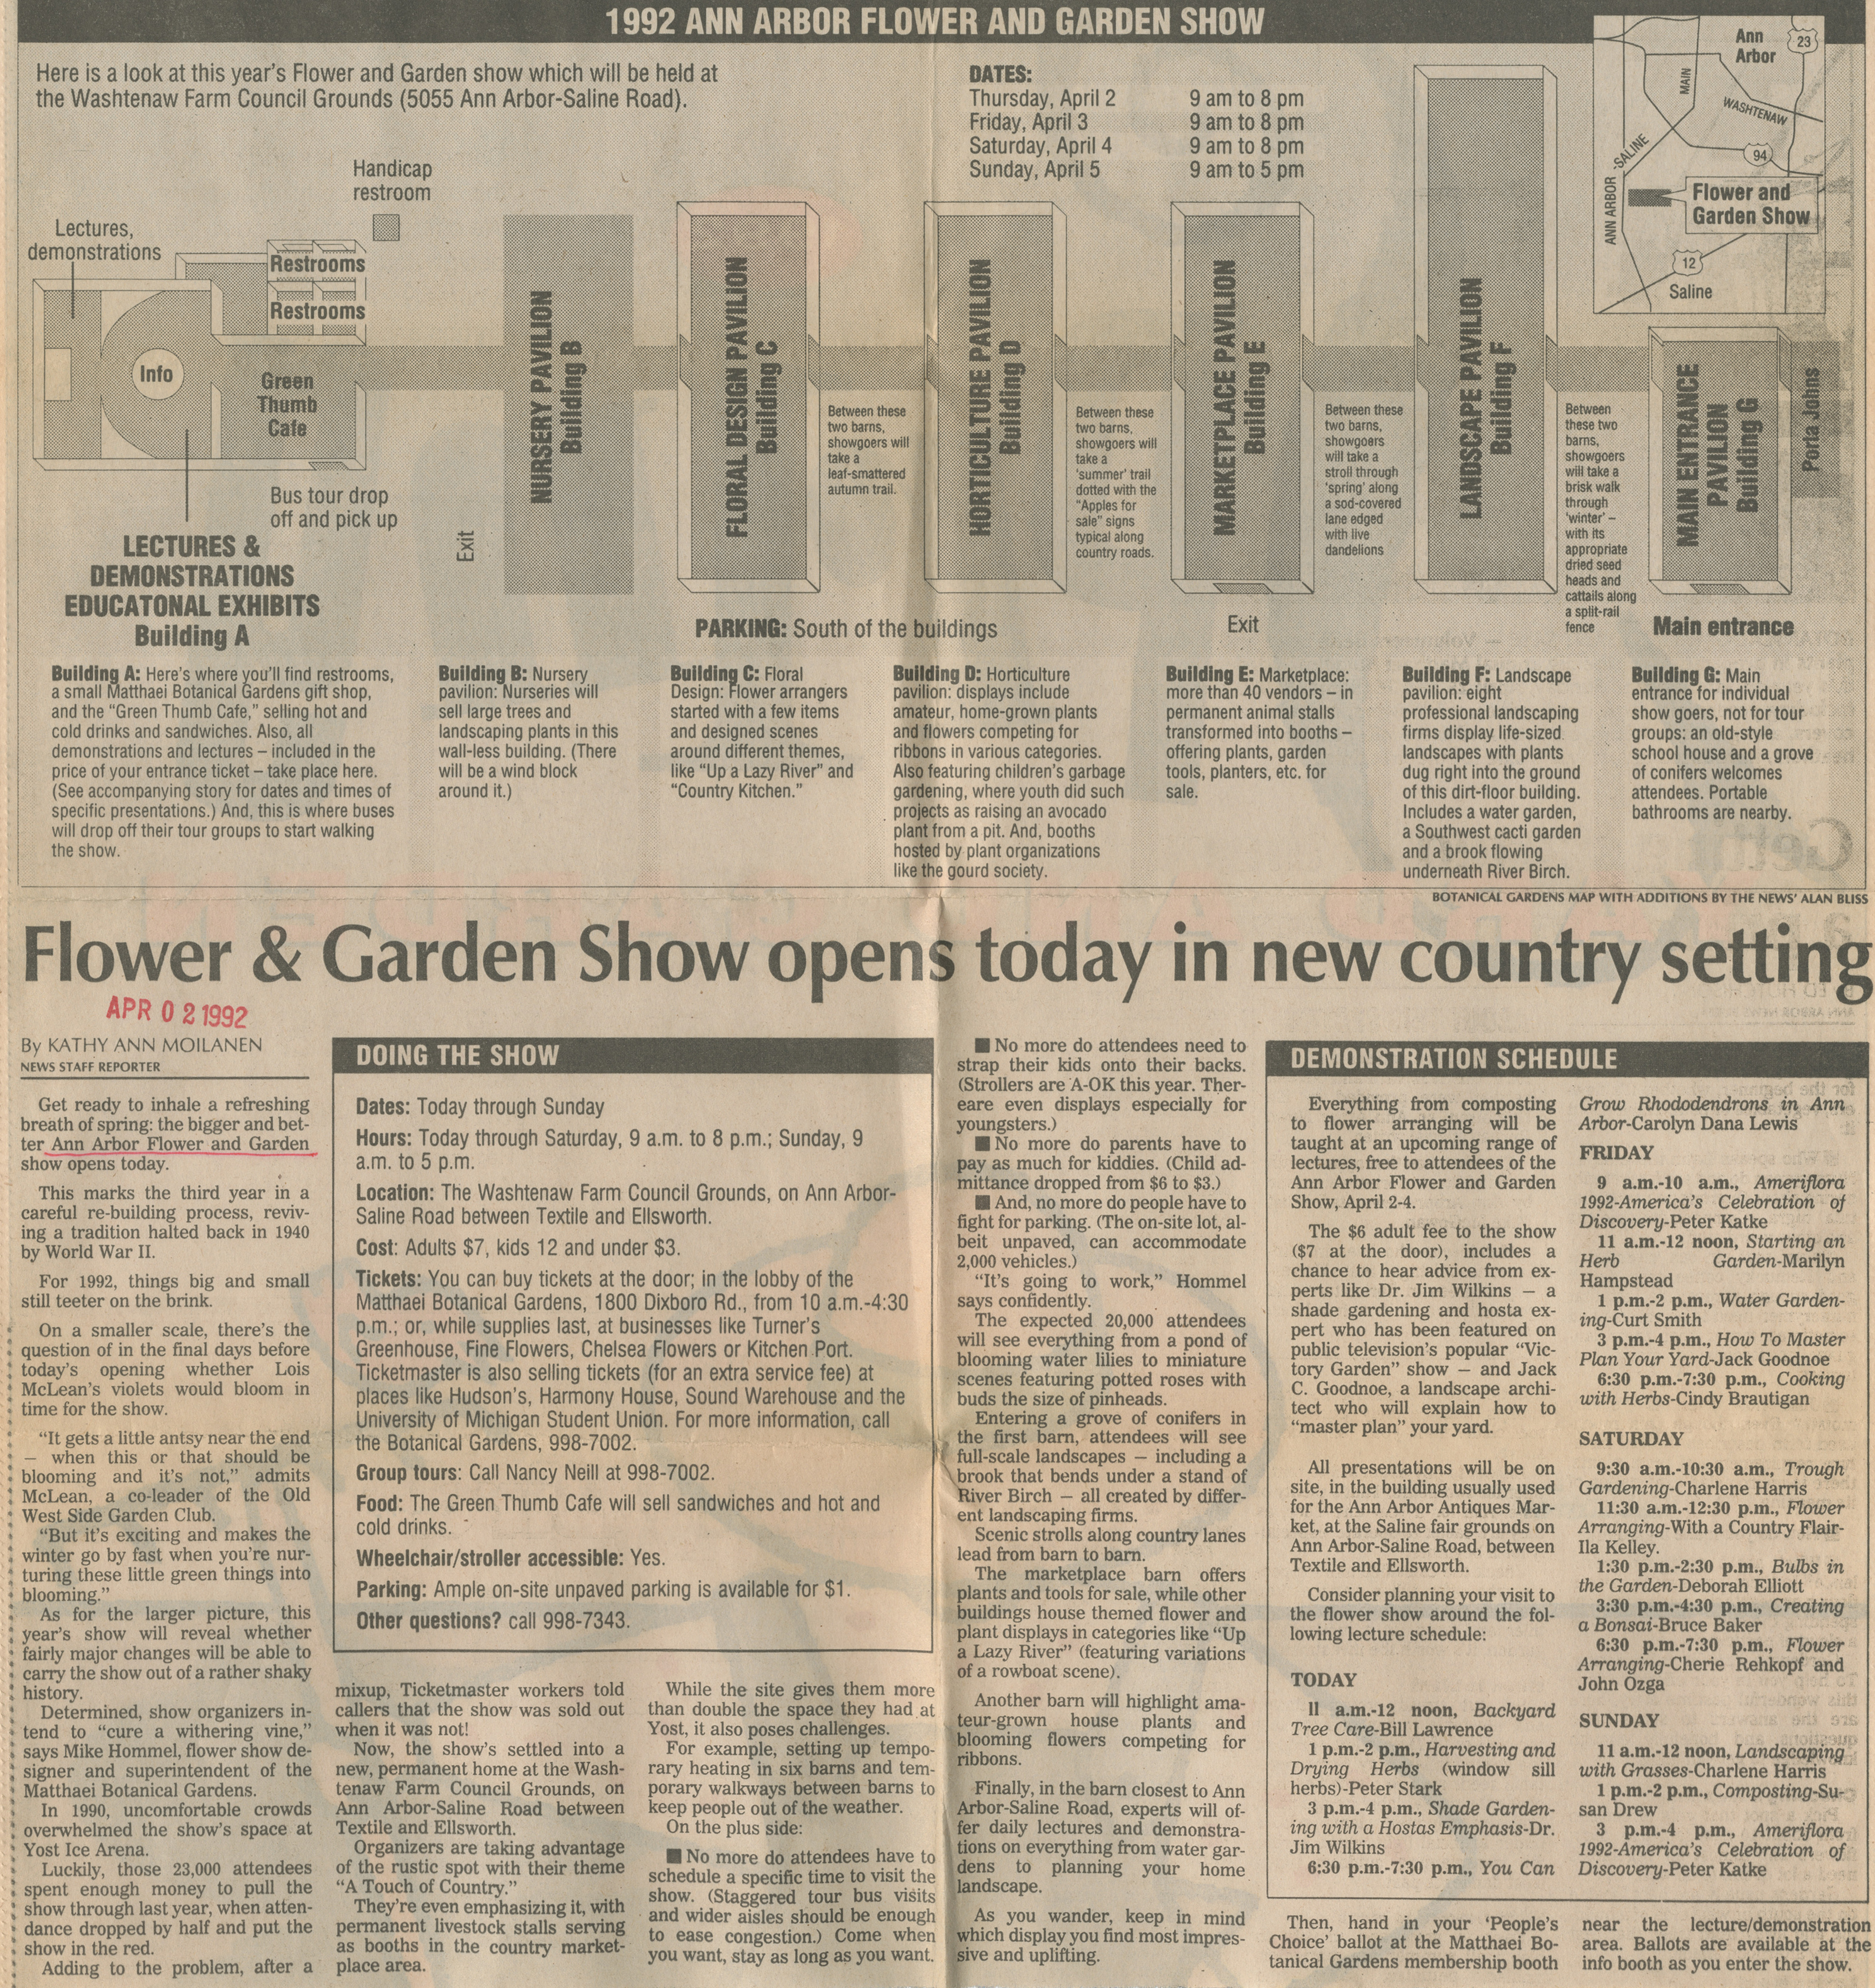 Flower & Garden Show Opens Today in New Country Setting image